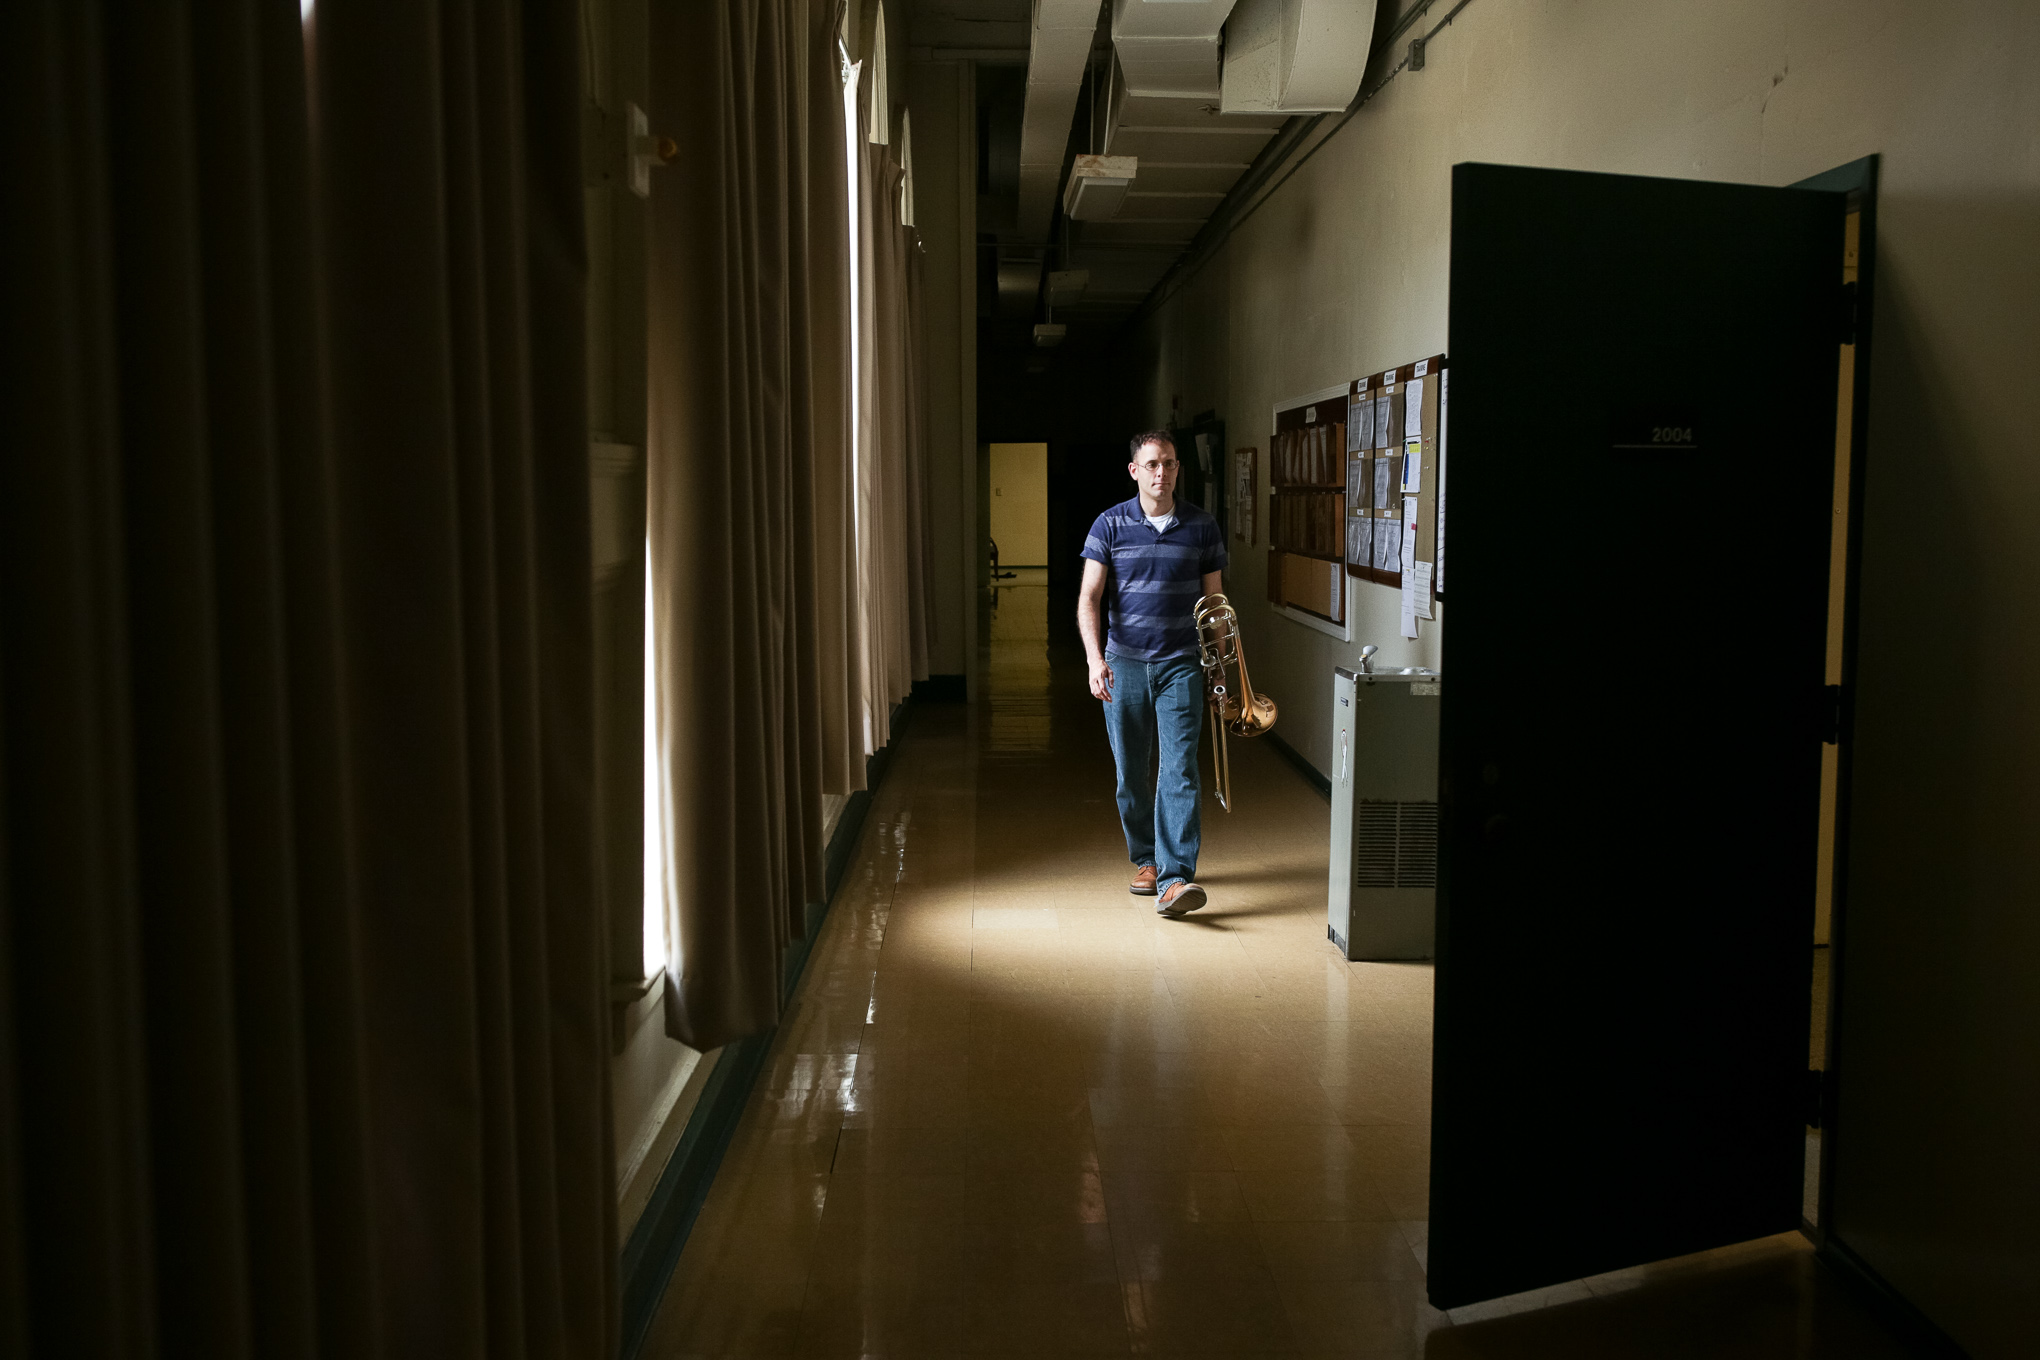 Sgt. Jonathan Stoby carries his trombone through the hallway just before the beginning of rehearsals.